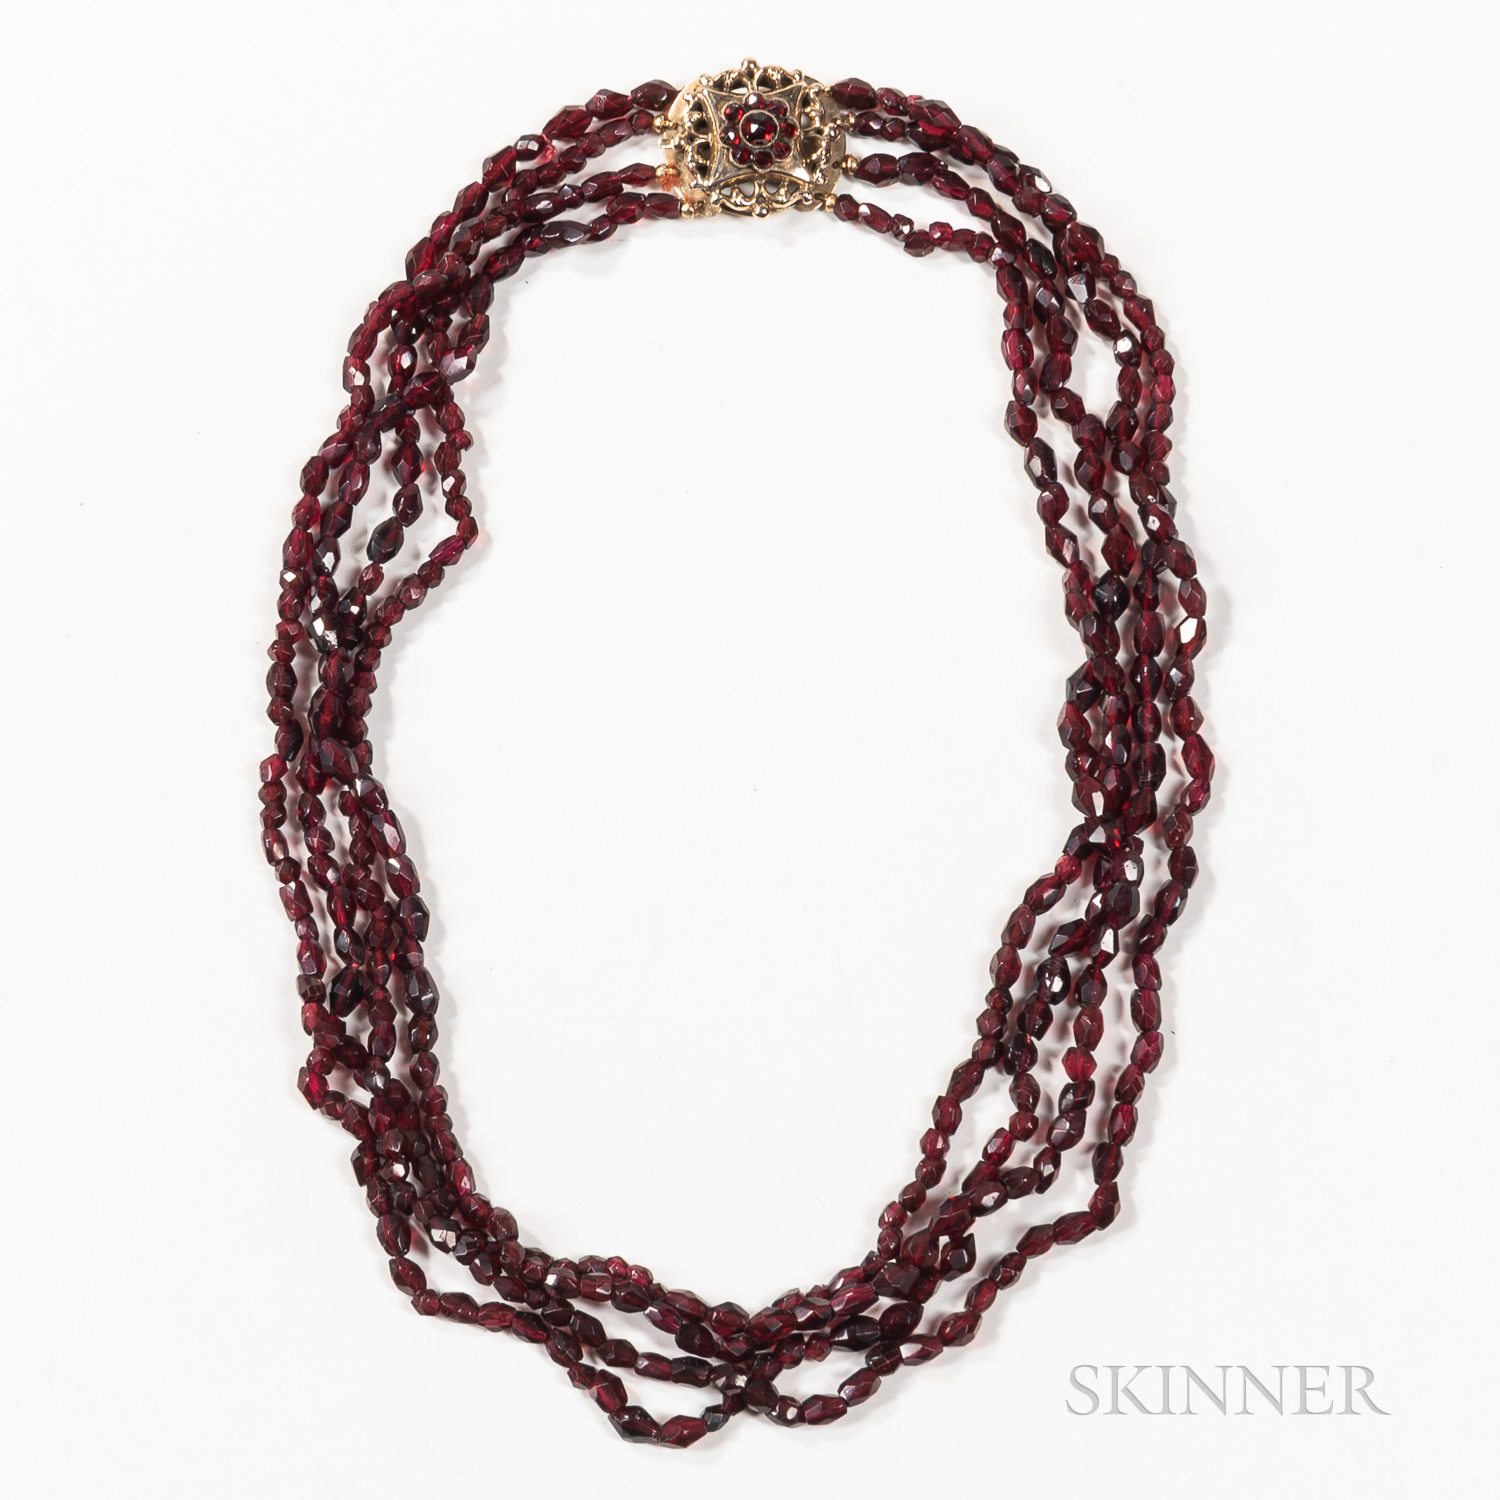 14kt Gold and Garnet Bead Necklace